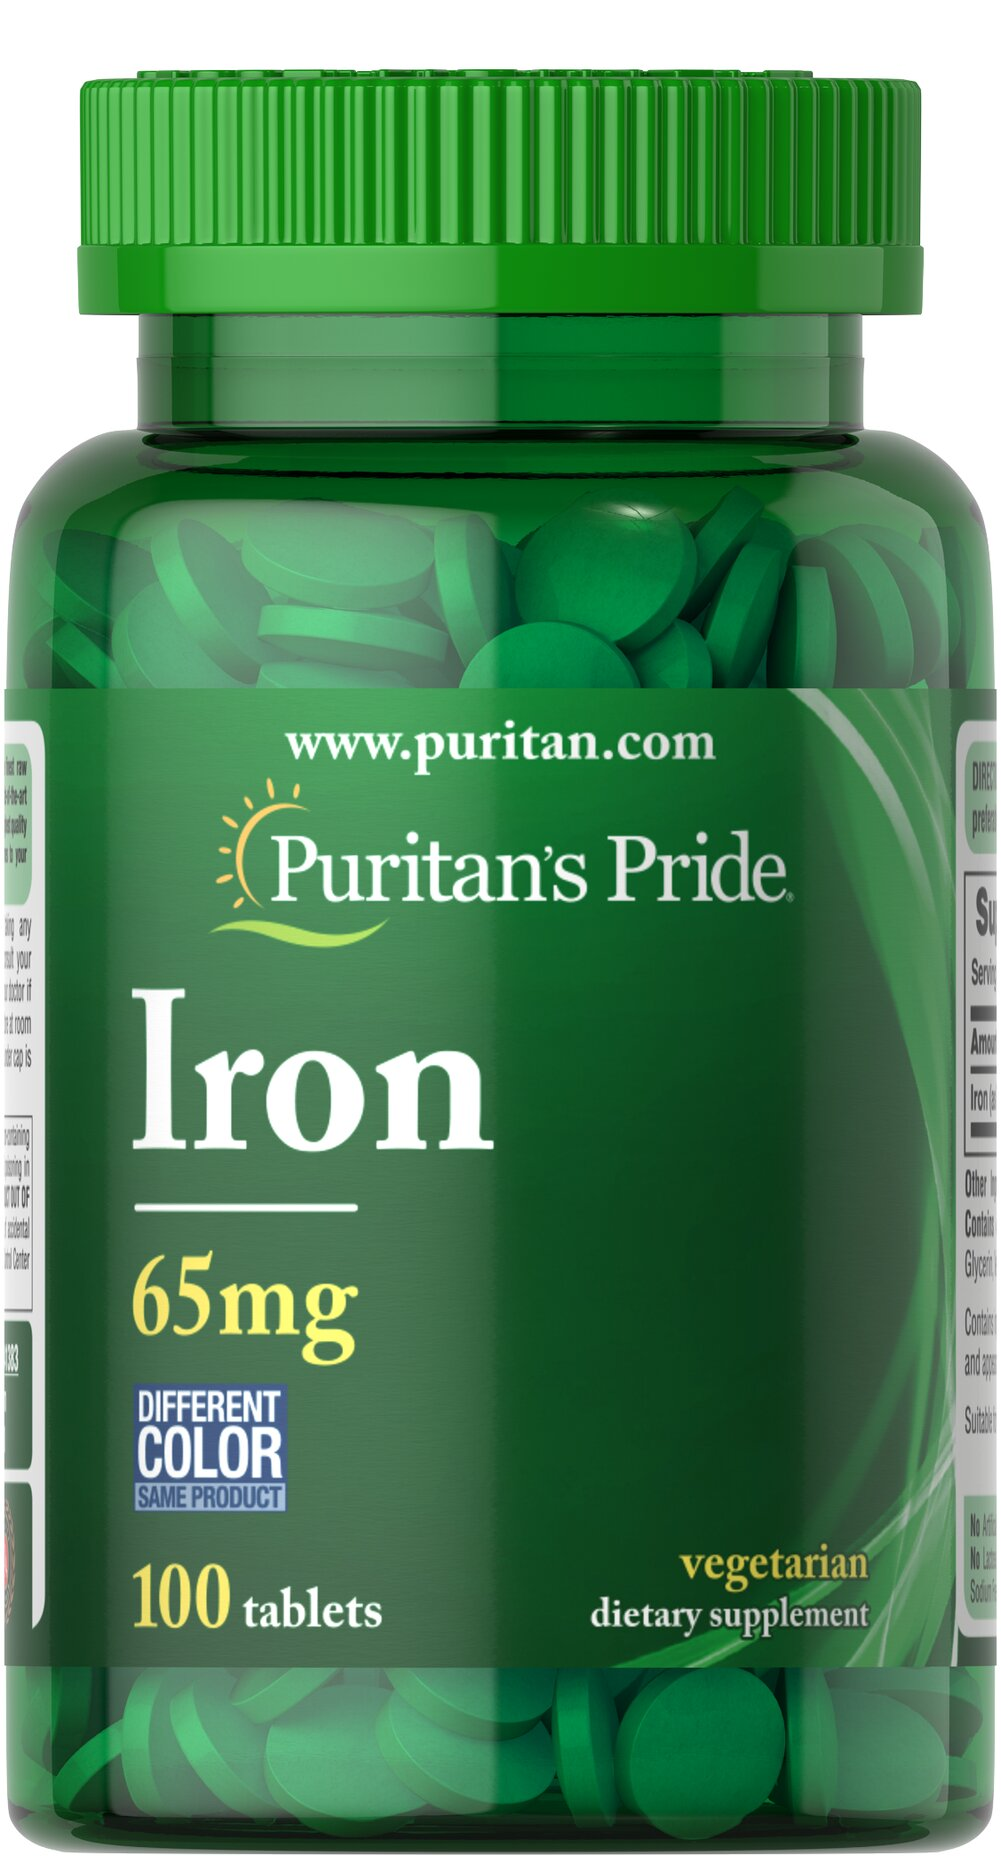 Iron Ferrous Sulfate 65 mg  100 Tablets 65 mg $9.99